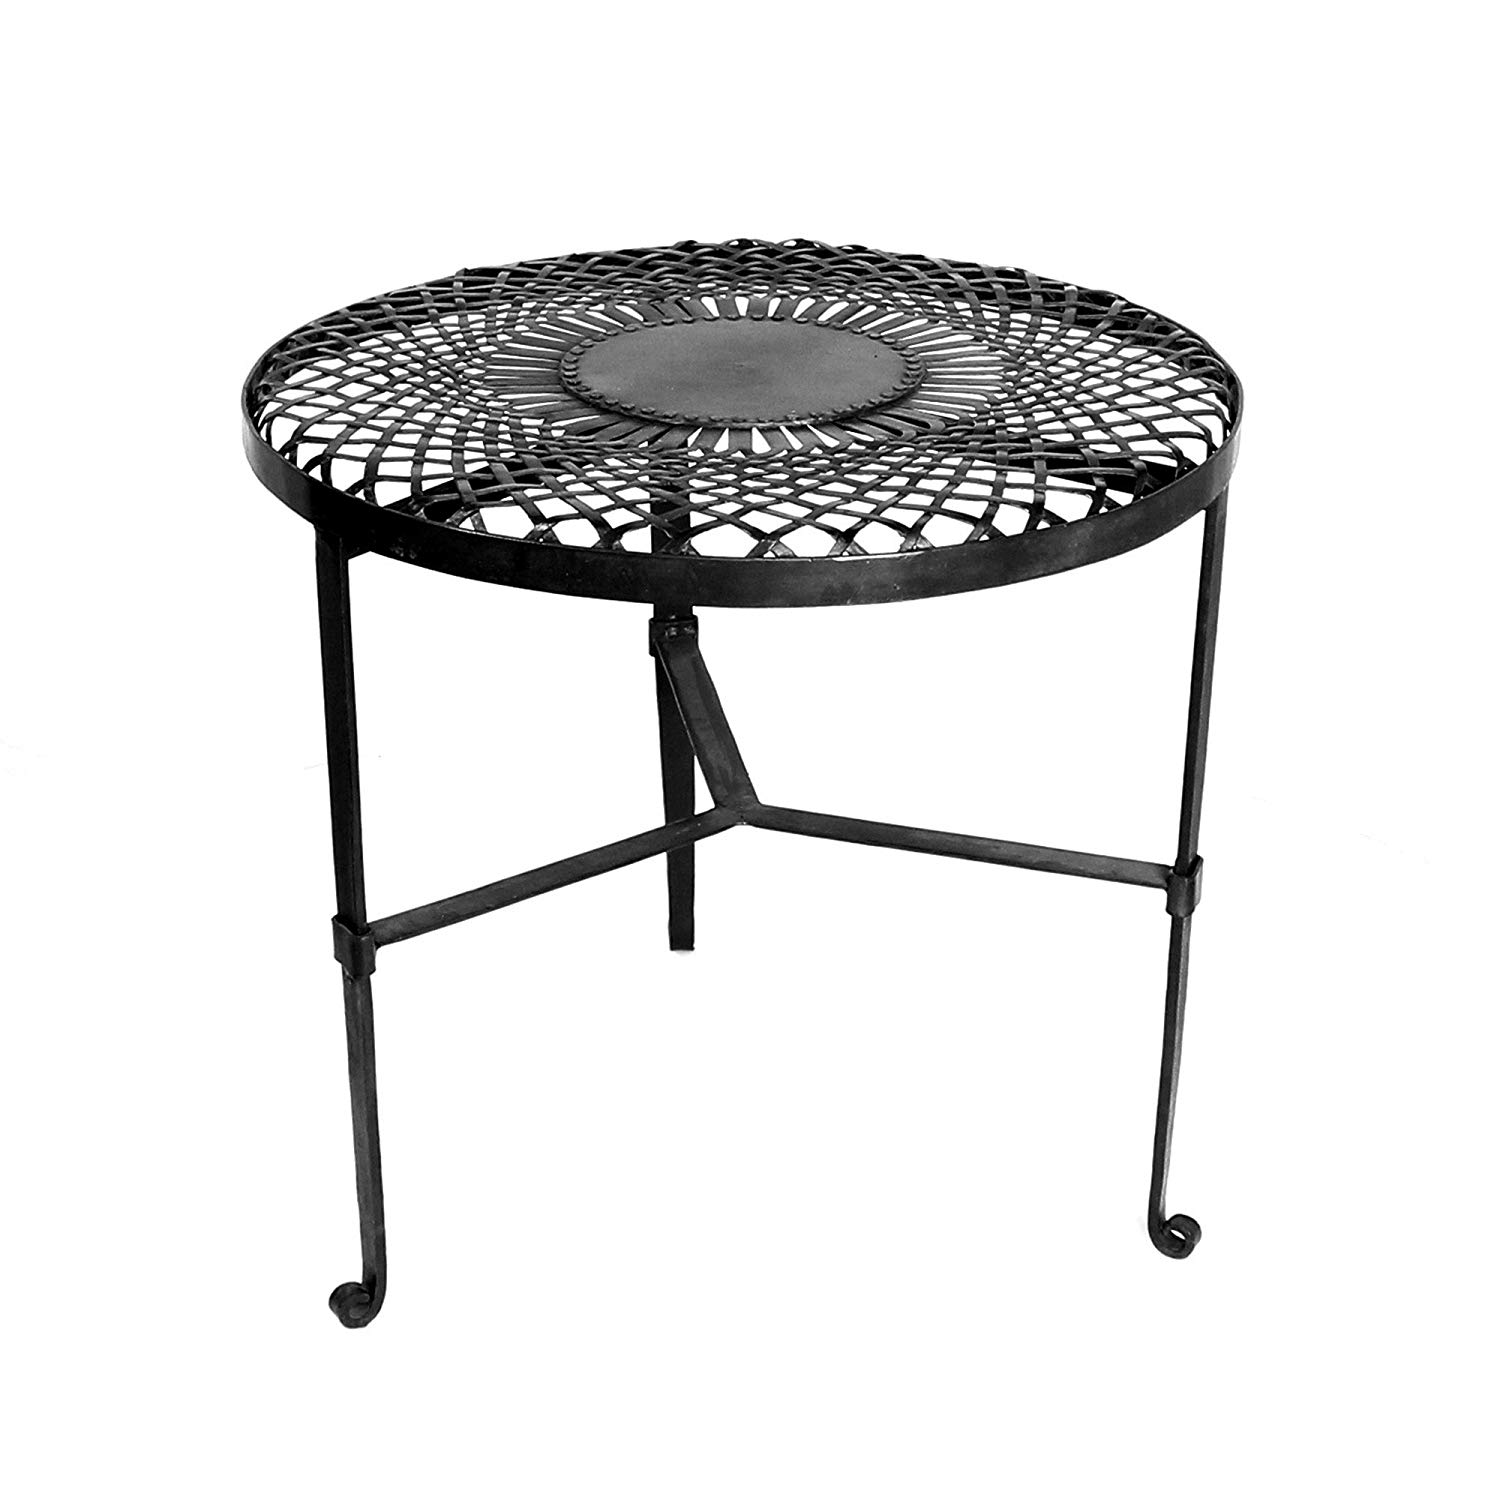 round woven mandala metal iron table black open stand accent kitchen dining small white night room chairs with arms reclaimed wood narrow side cabinet tall square coffee modern